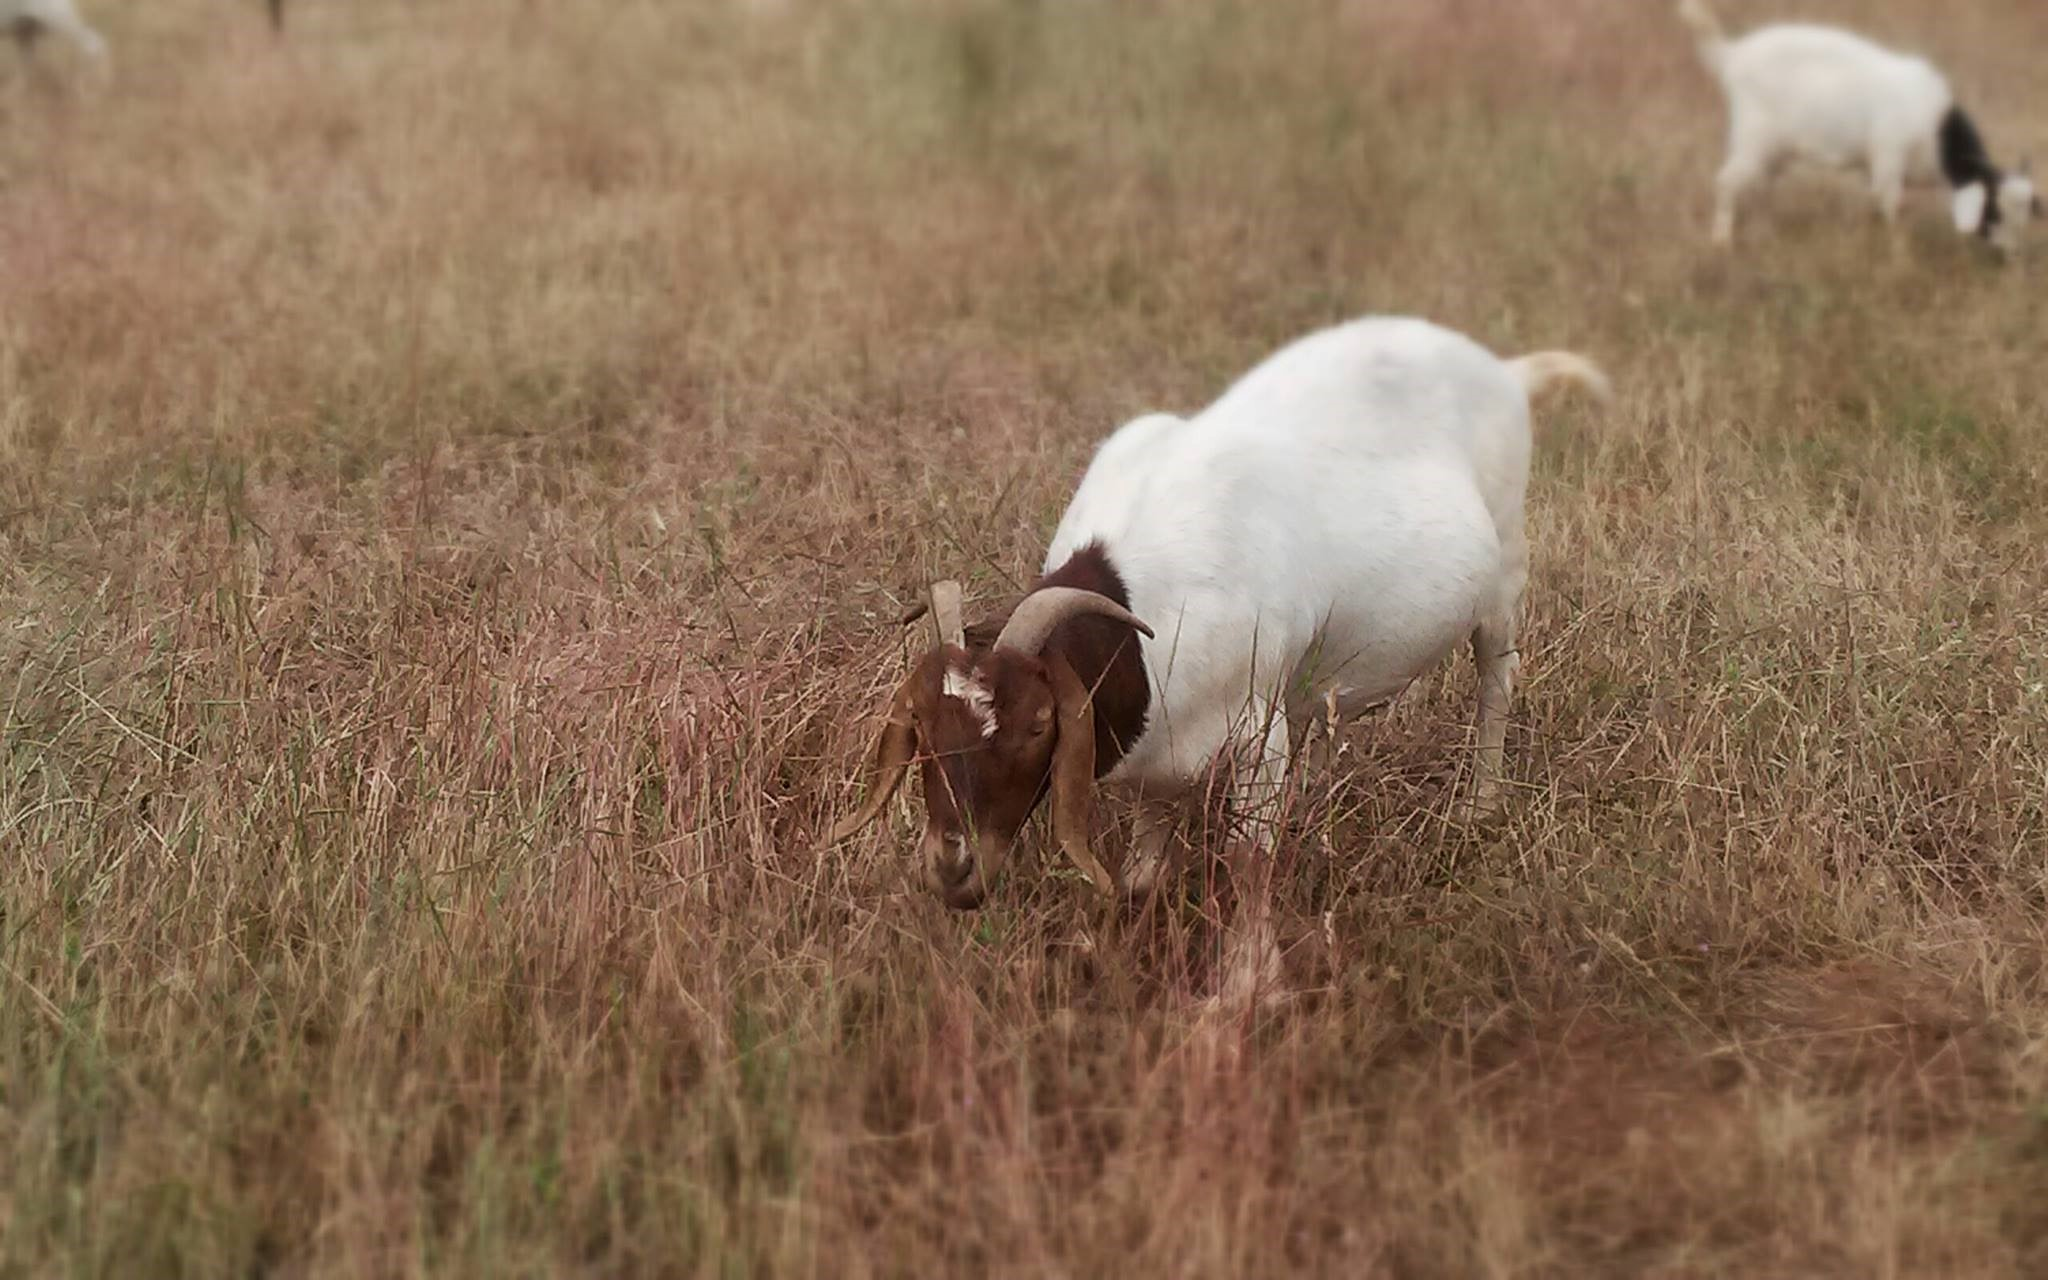 So, You Want a Goat? Here Are the Challenges You'll Face